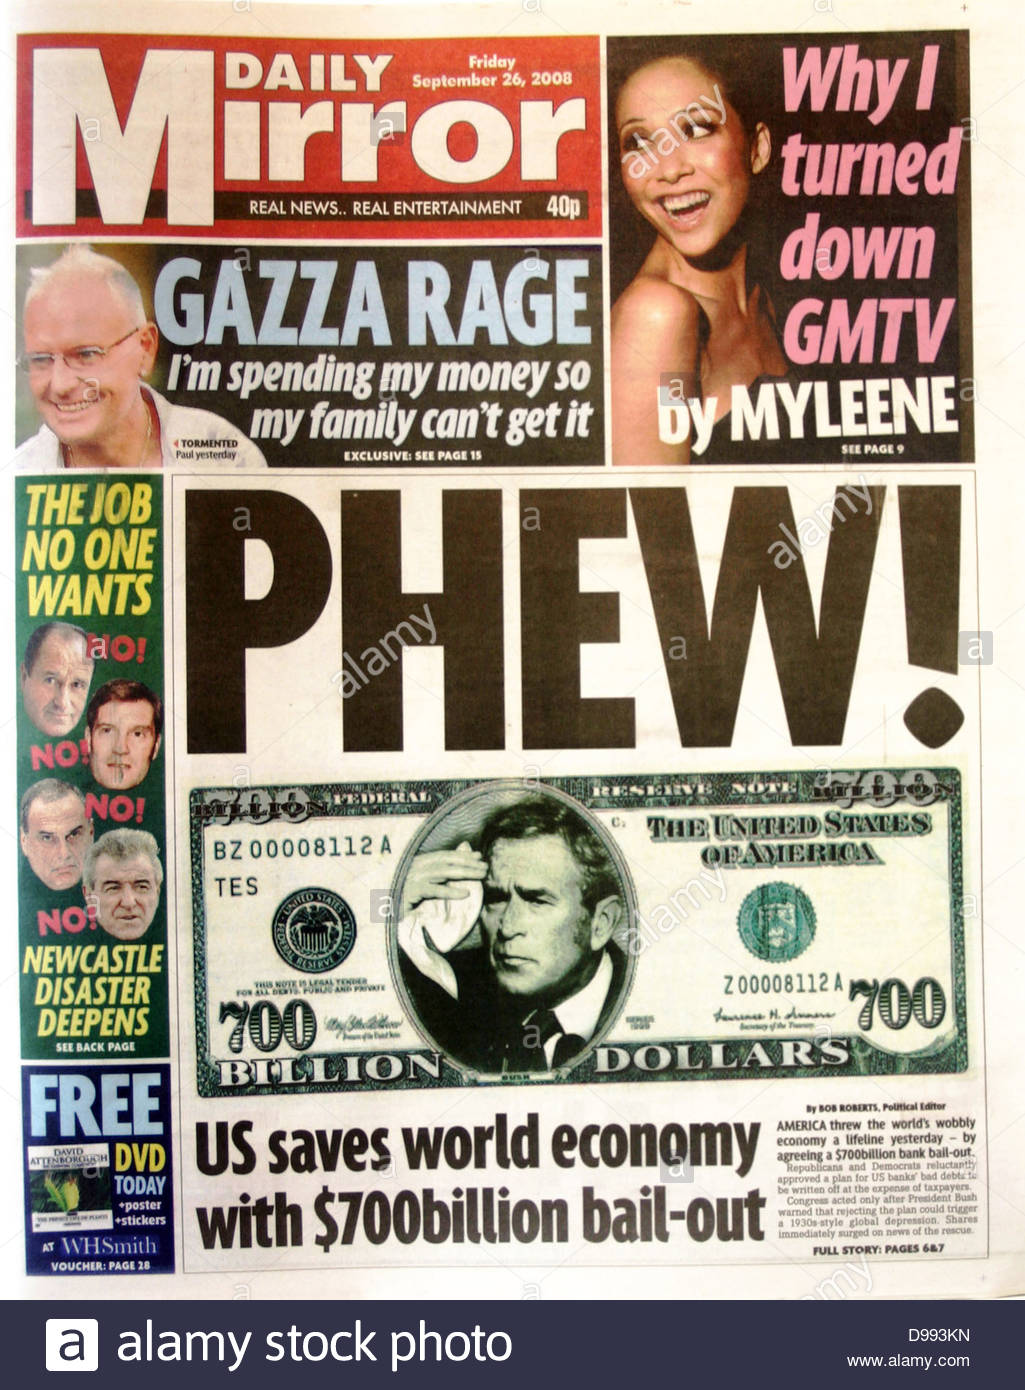 Front page of 'The Mirror' newspaper 26th September 2008. Lead story is the collapse of stock market values - Stock Image